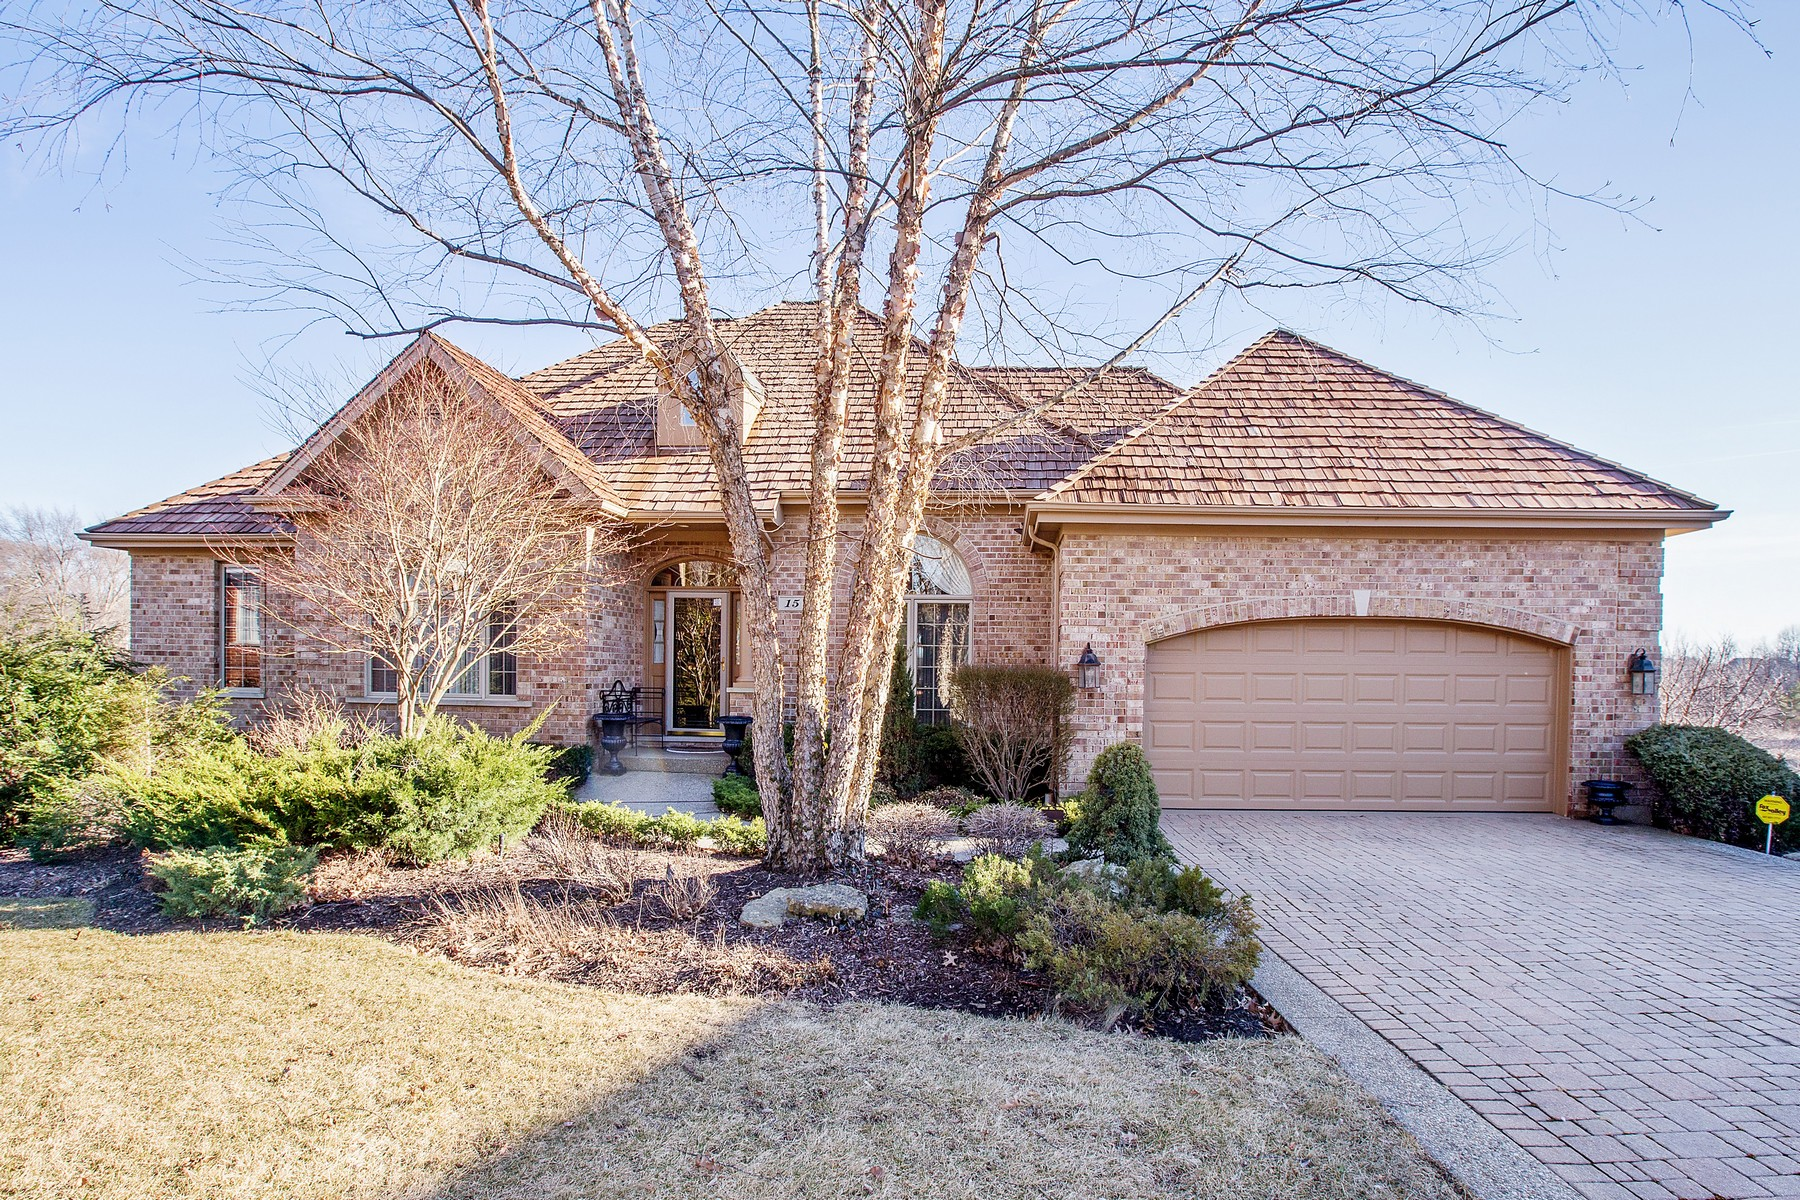 Single Family Home for Sale at Spectacular Custom Brick Ranch 15 Lochbrook Lane Inverness, Illinois, 60010 United States